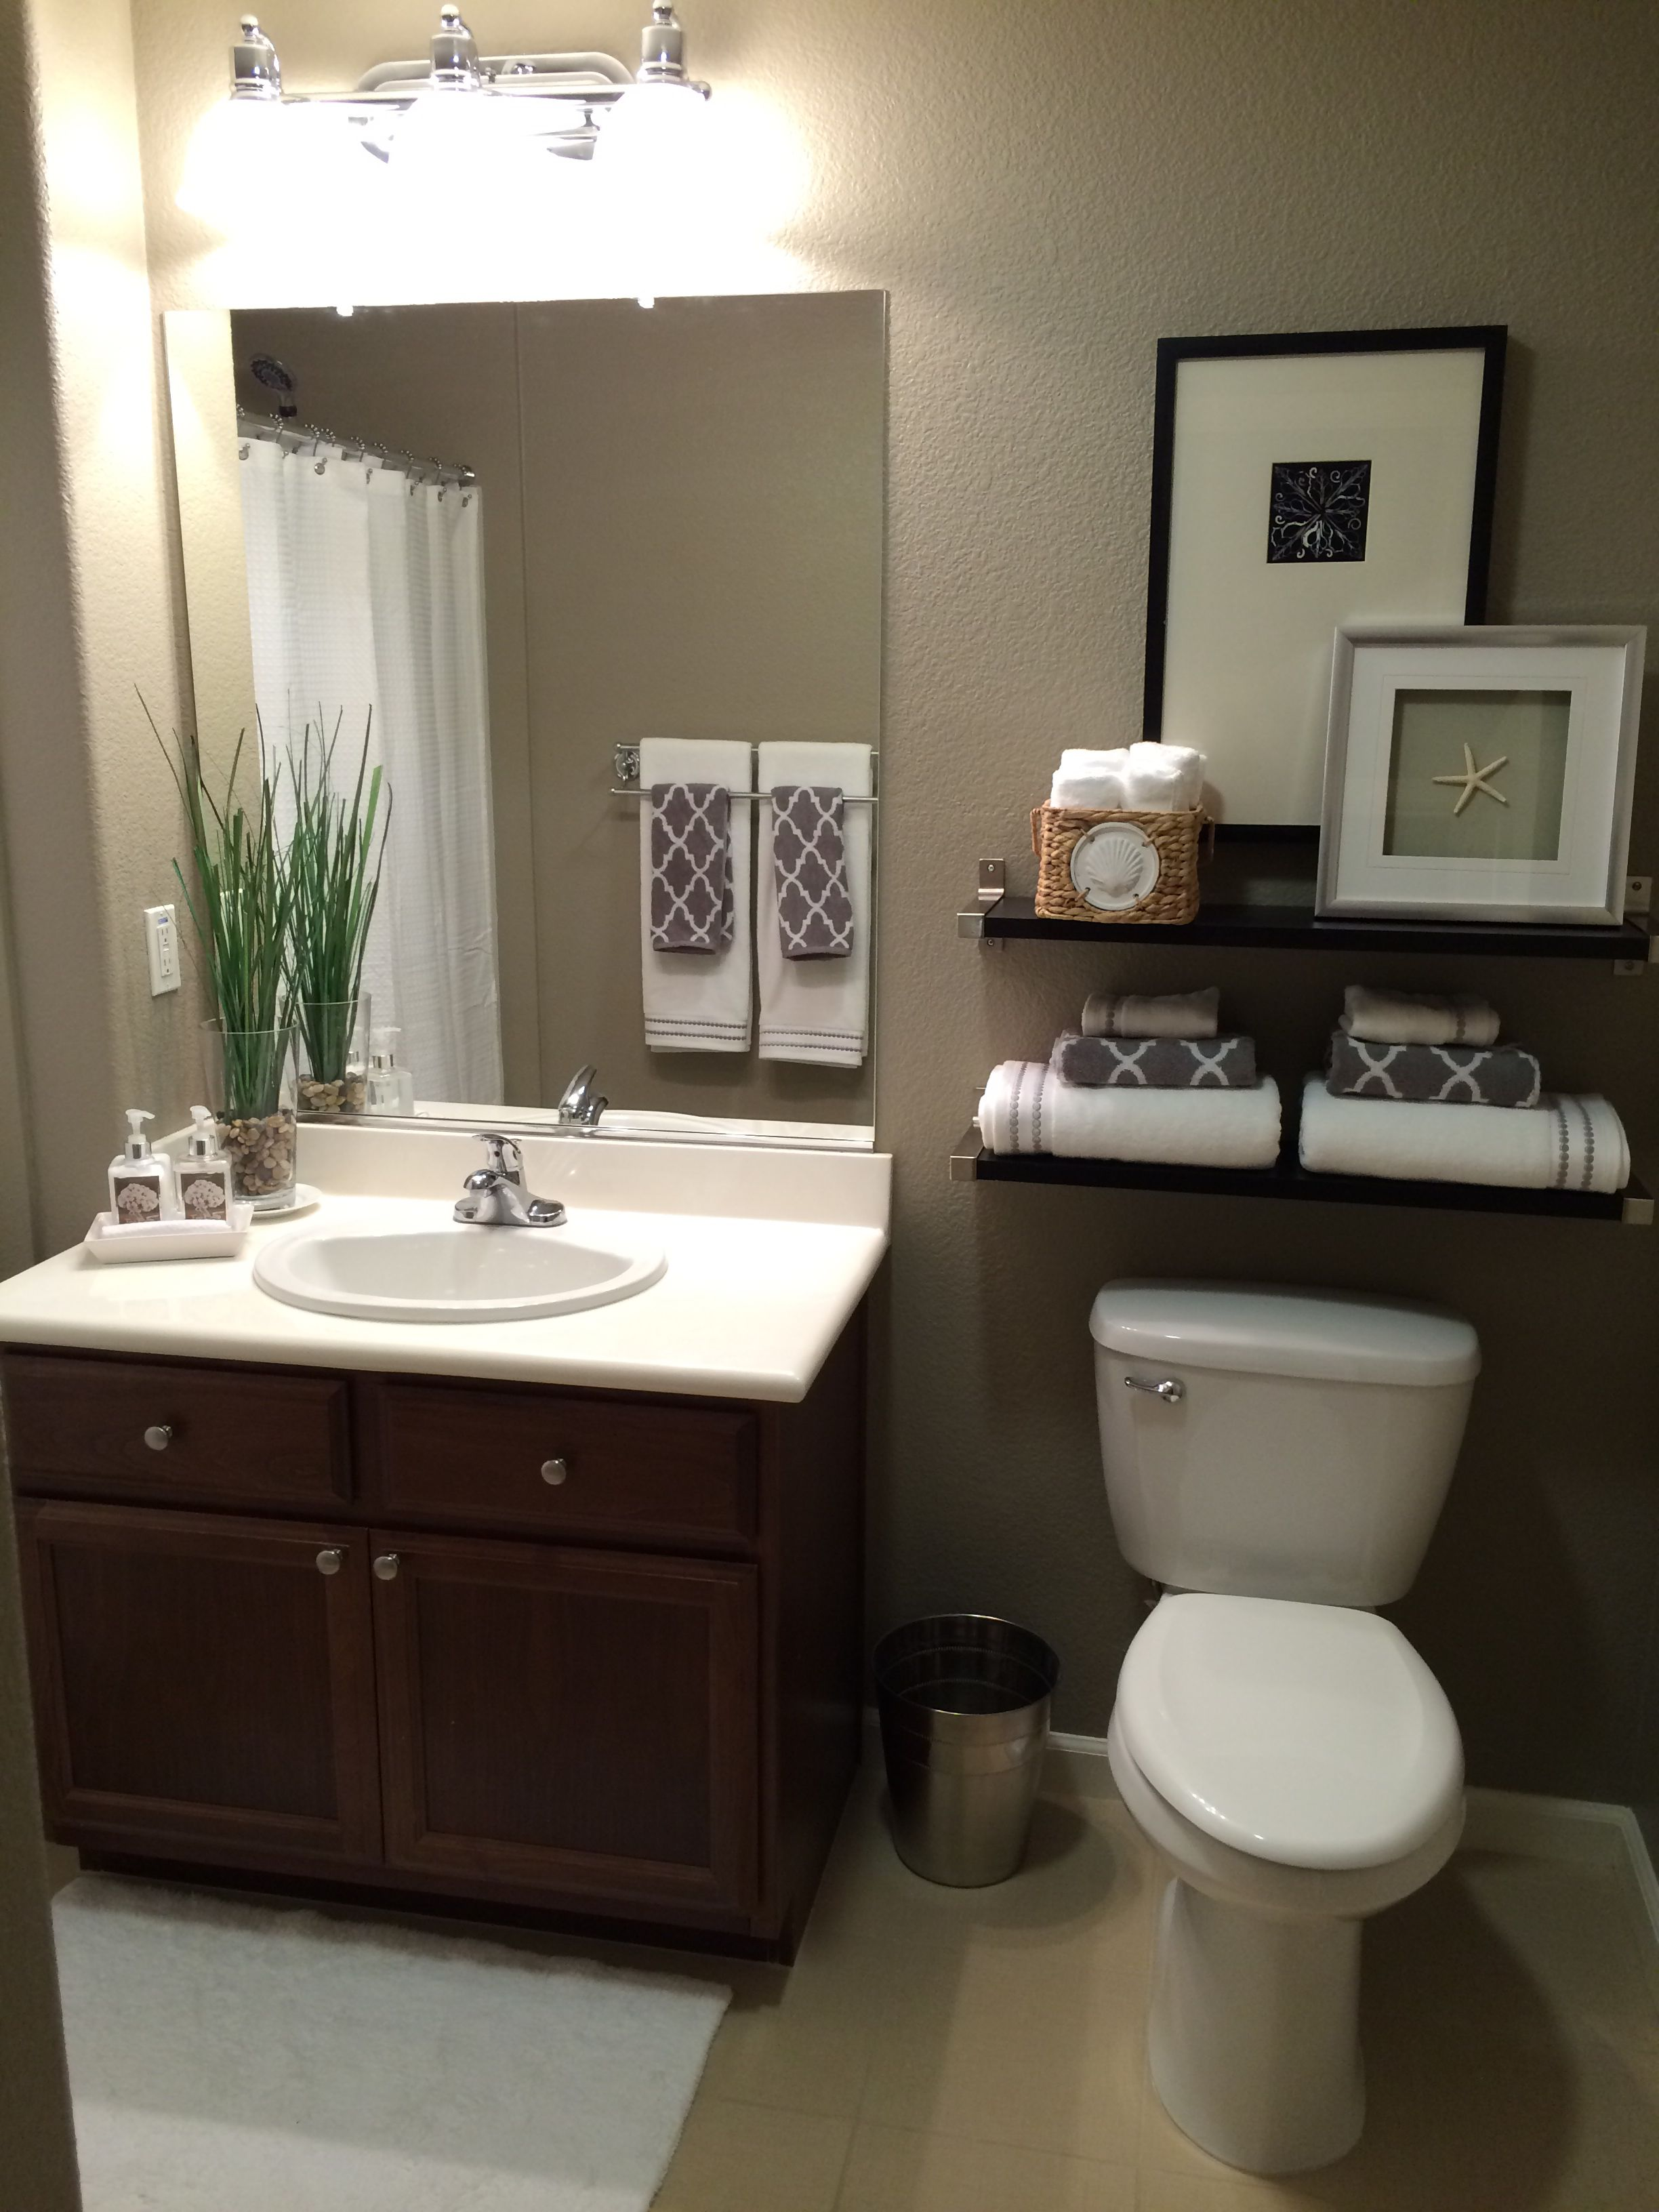 Guest Bath Paint Color Is Taupe Tone By Sherwin Williams